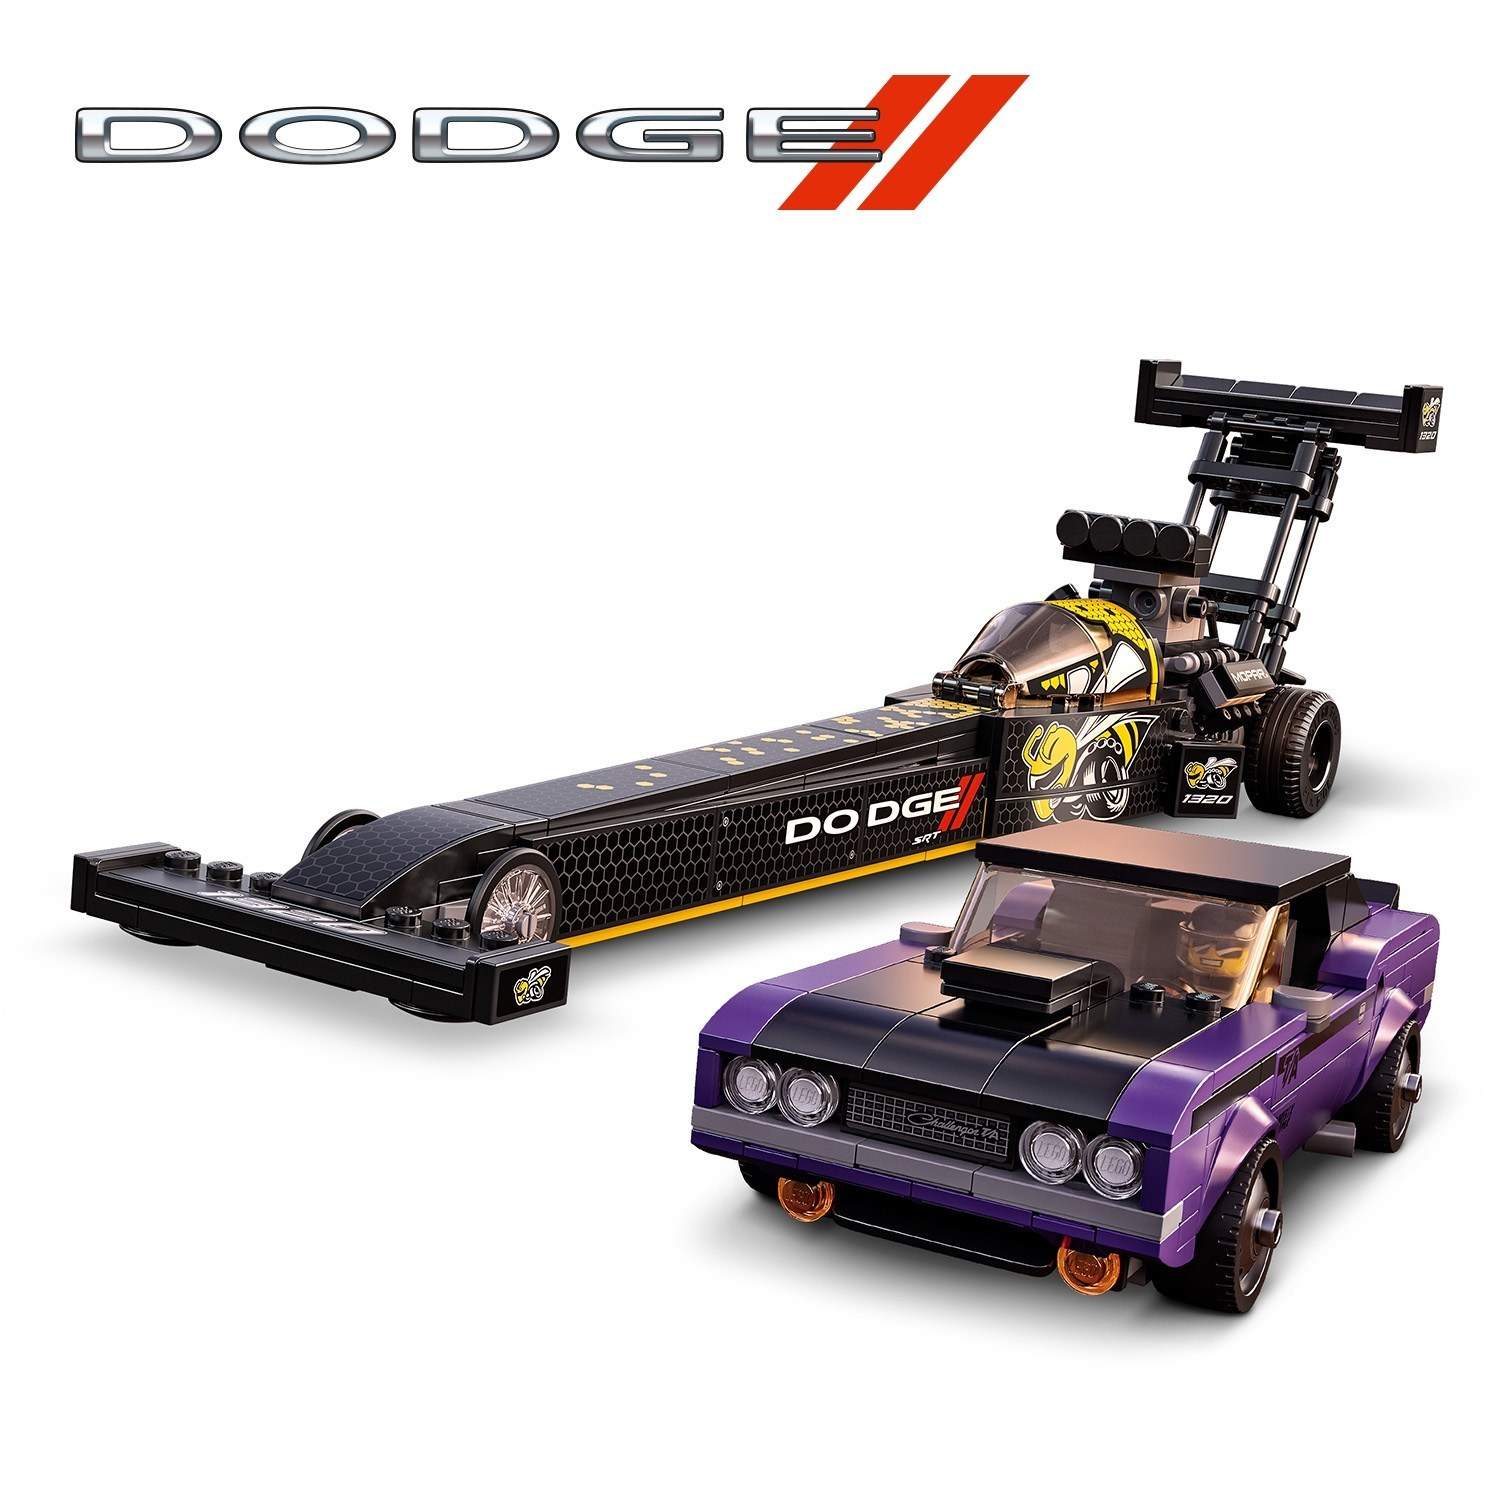 Dodge and LEGO team up for new building set featuring a 1970 Dodge Charger T/A and a Top Fuel Dragster